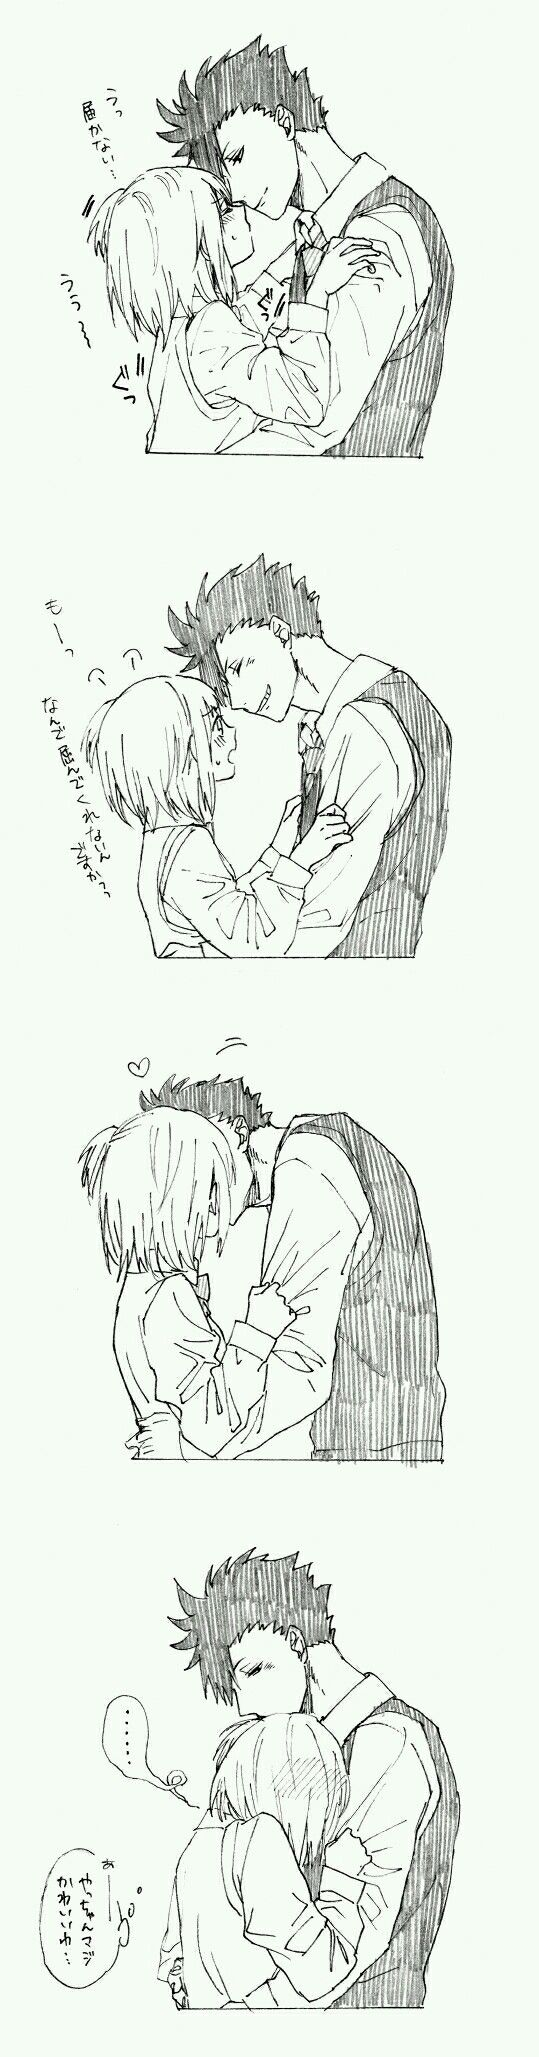 Kuro x Yachi  mini comics #anime #manga #love